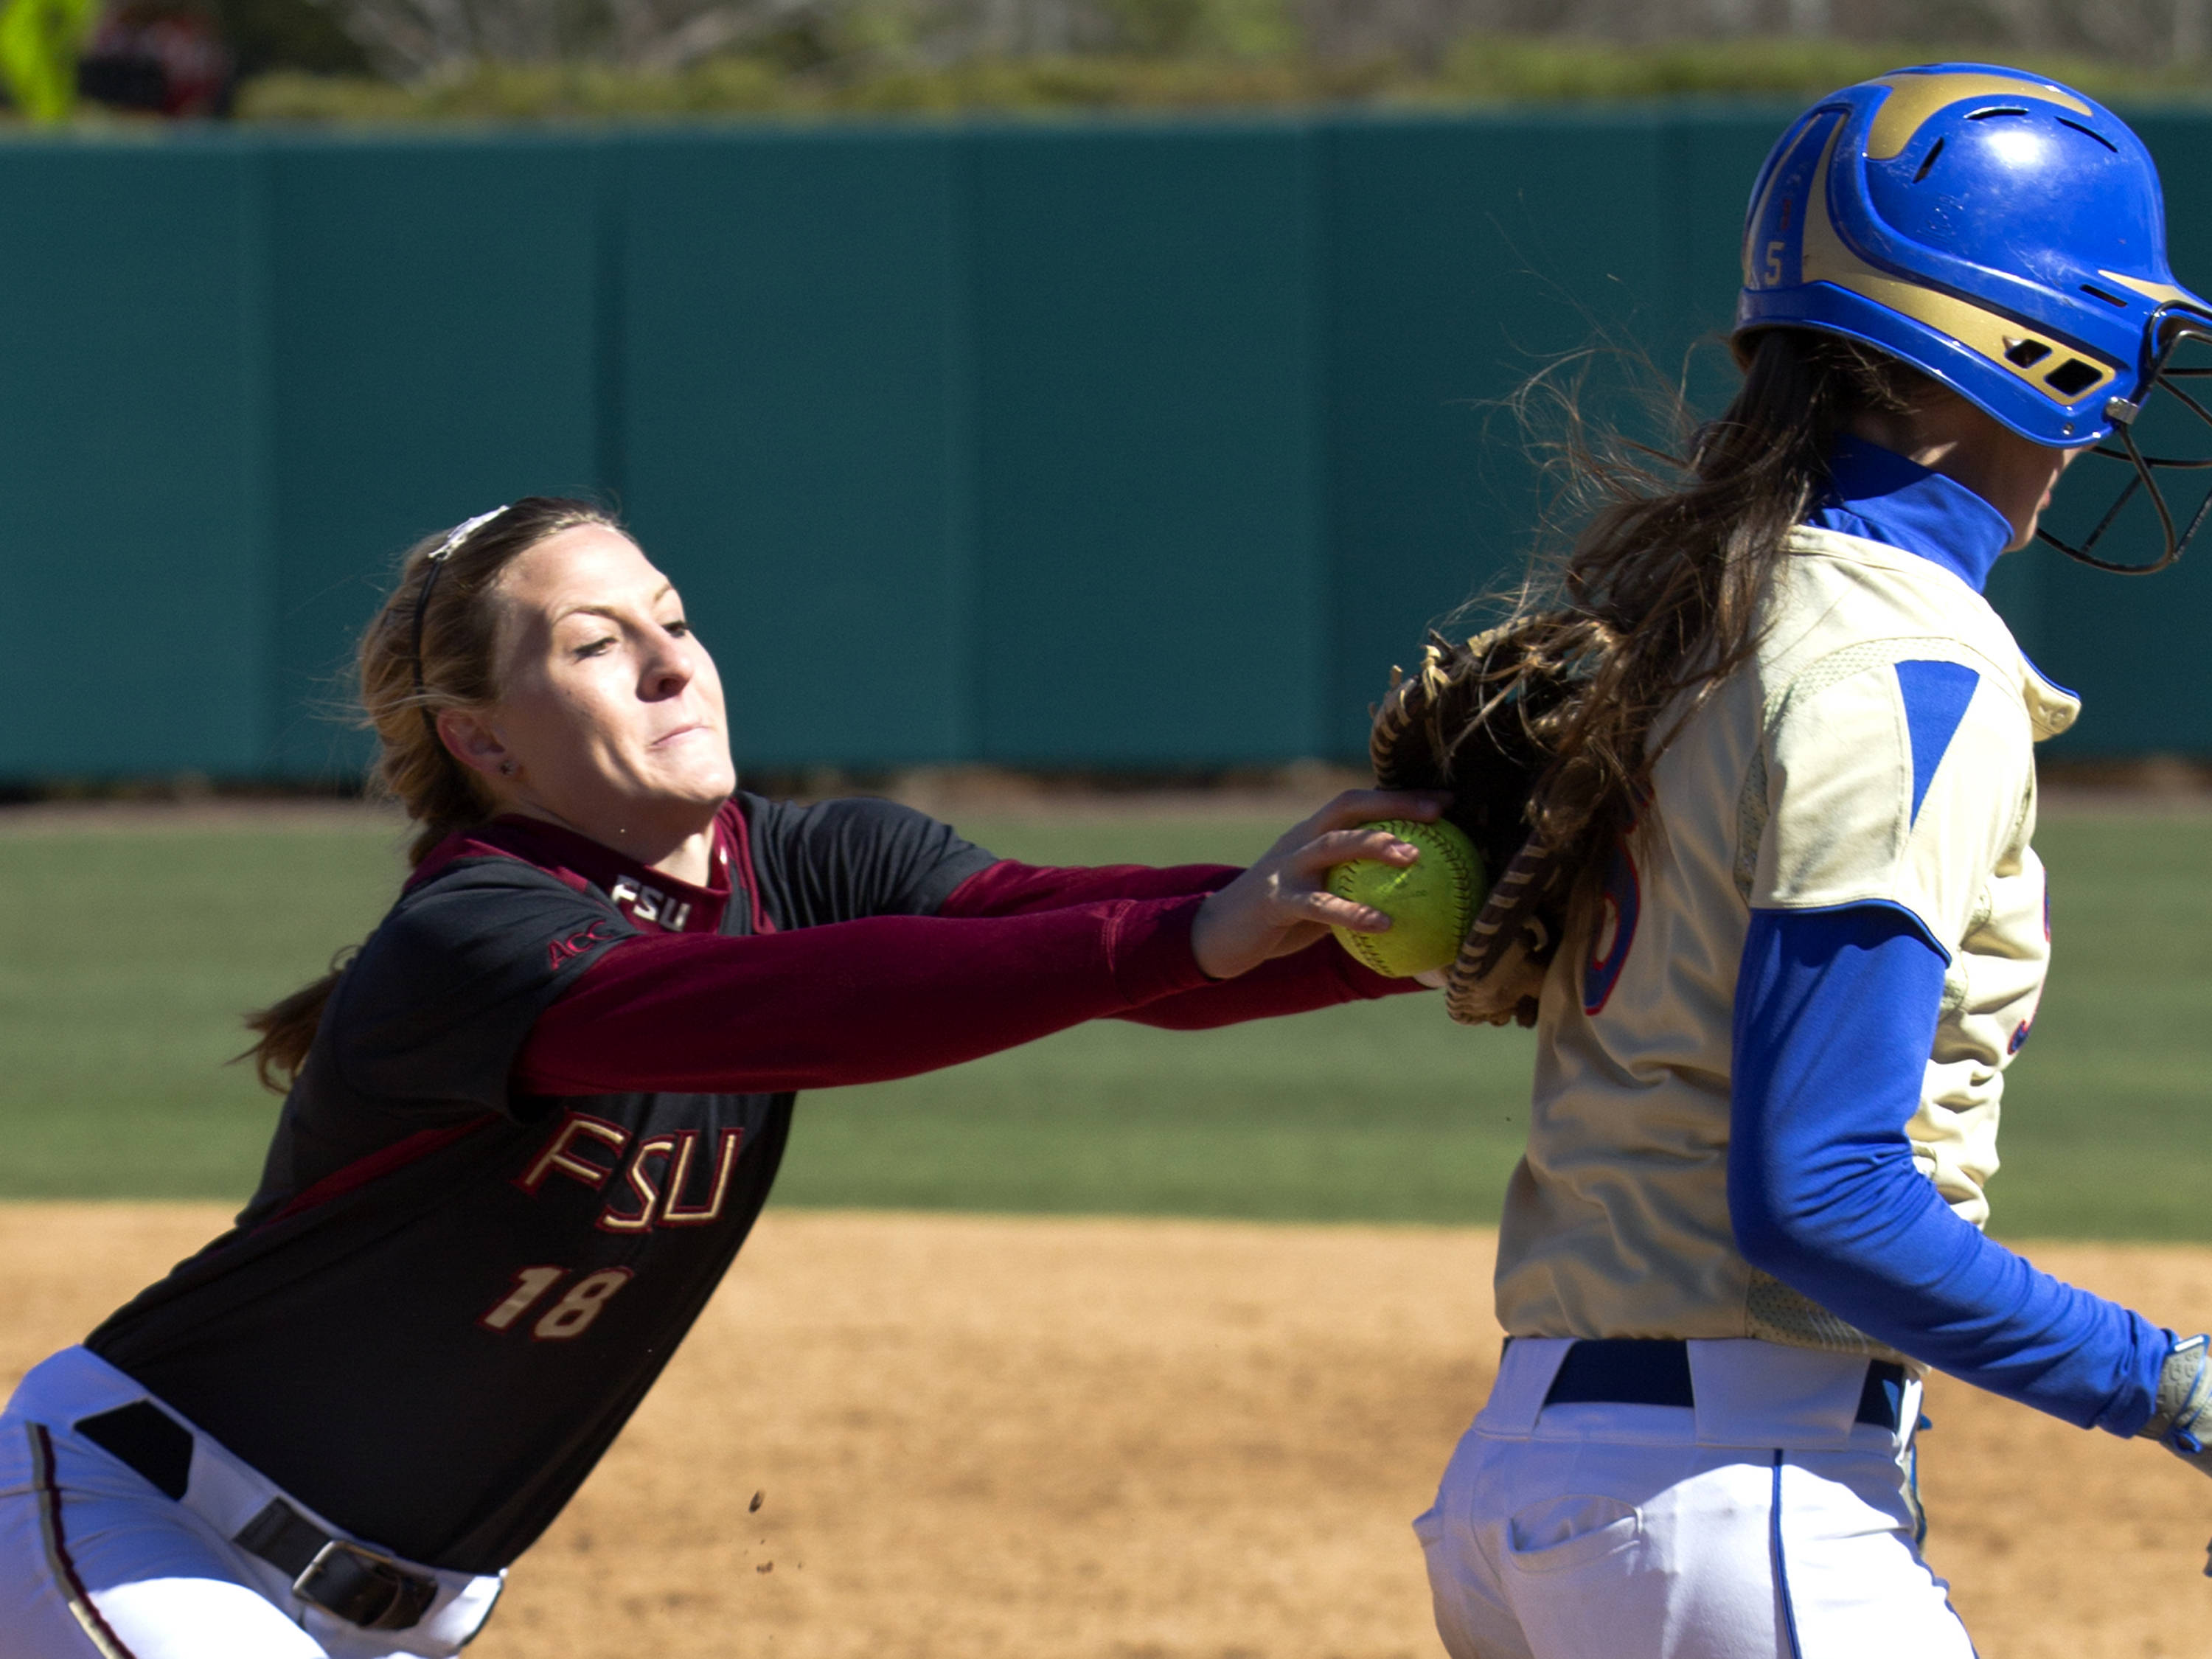 Victoria West (18), with a tag at first base, FSU vs Tulsa, 02/17/13. (Photo by Steve Musco)